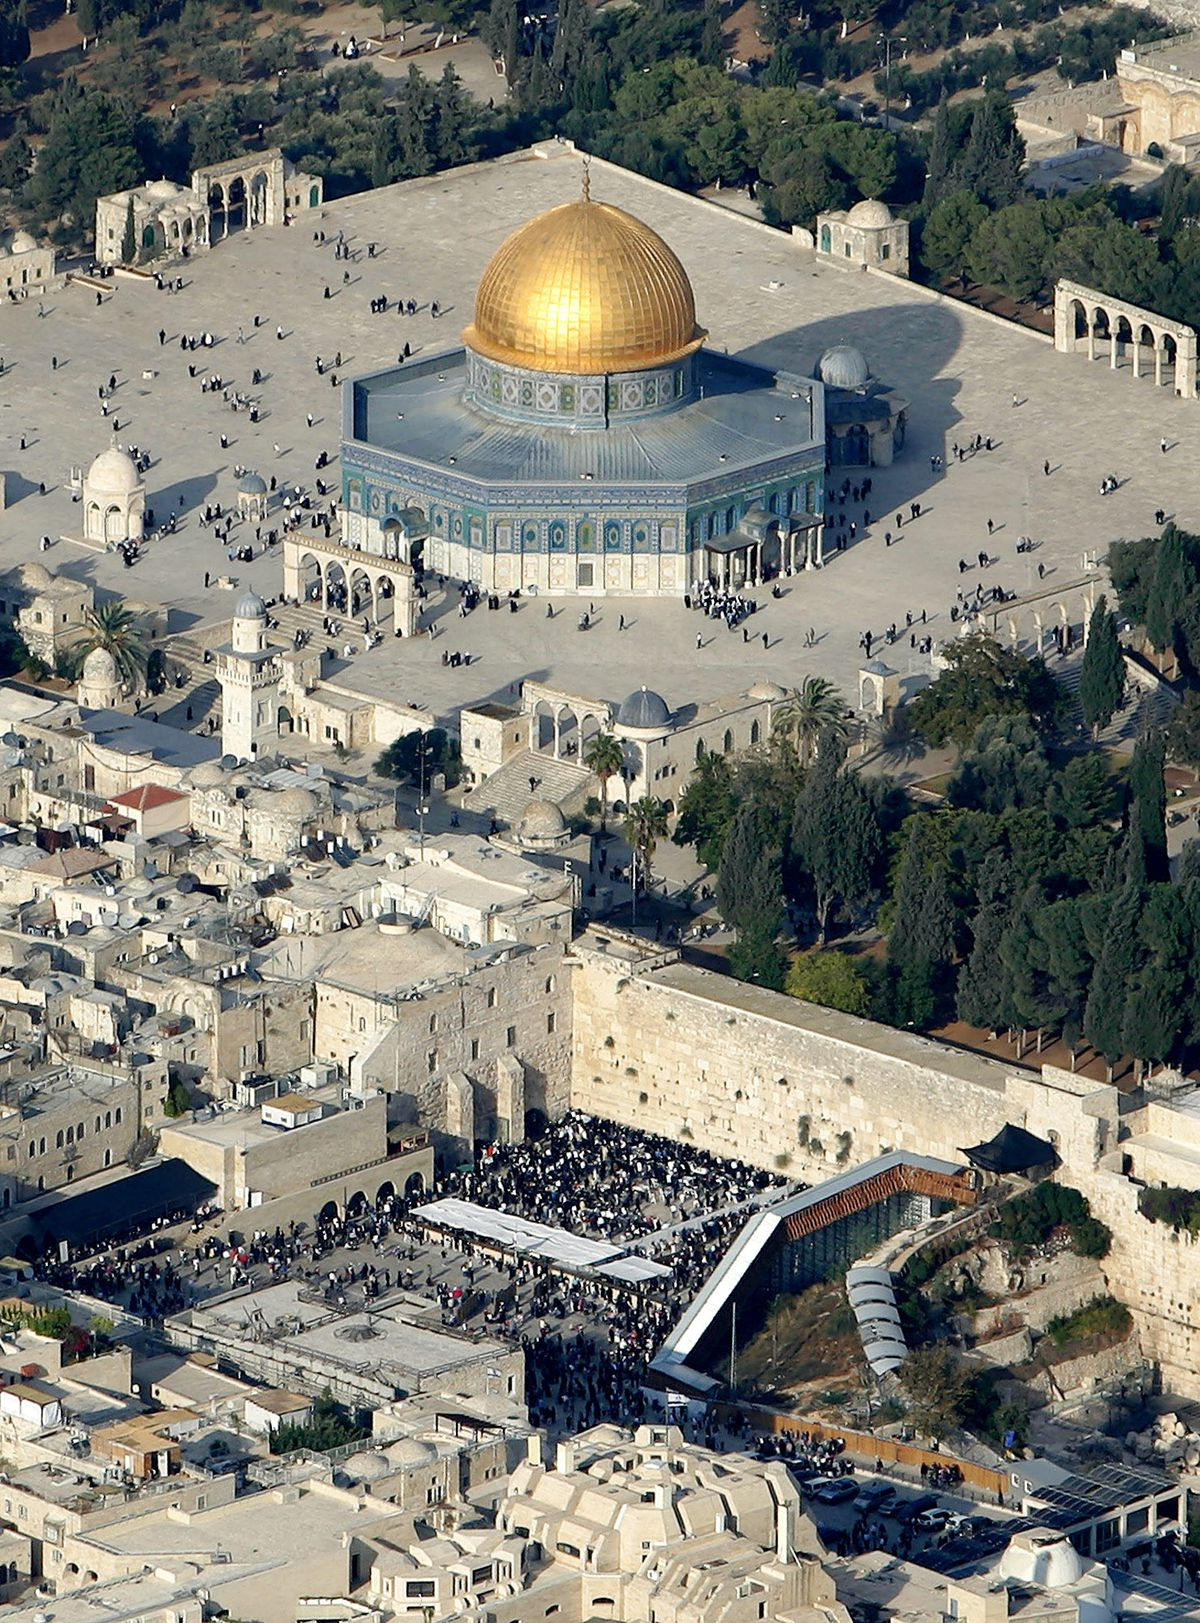 """FILE- In this aerial photo from files dated Oct. 20, 2005, Muslim worshippers gather outside the Dome of the Rock Mosque, in the Al Aqsa Mosque compound, also known to Jews as the Temple Mount, and Jews gather at the Western Wall, bottom center, the holiest site where Jews can pray, in Jerusalem's Old City. Conventional wisdom on Israeli-Palestinian peacemaking has long held that Israel should relinquish most of the lands it occupied in 1967 in favor of a Palestinian state, the """"two-state solution"""" that much of the world has supported for years, but Mohammed Ishtayeh, a senior adviser to Palestinian President Mahmoud Abbas, said on Sunday Dec. 12, 2010 """"If Israel continues with these measures that it is employing today the possibility of a two-state solution becomes very slim"""". (AP Photo/Kevin Frayer, File)"""